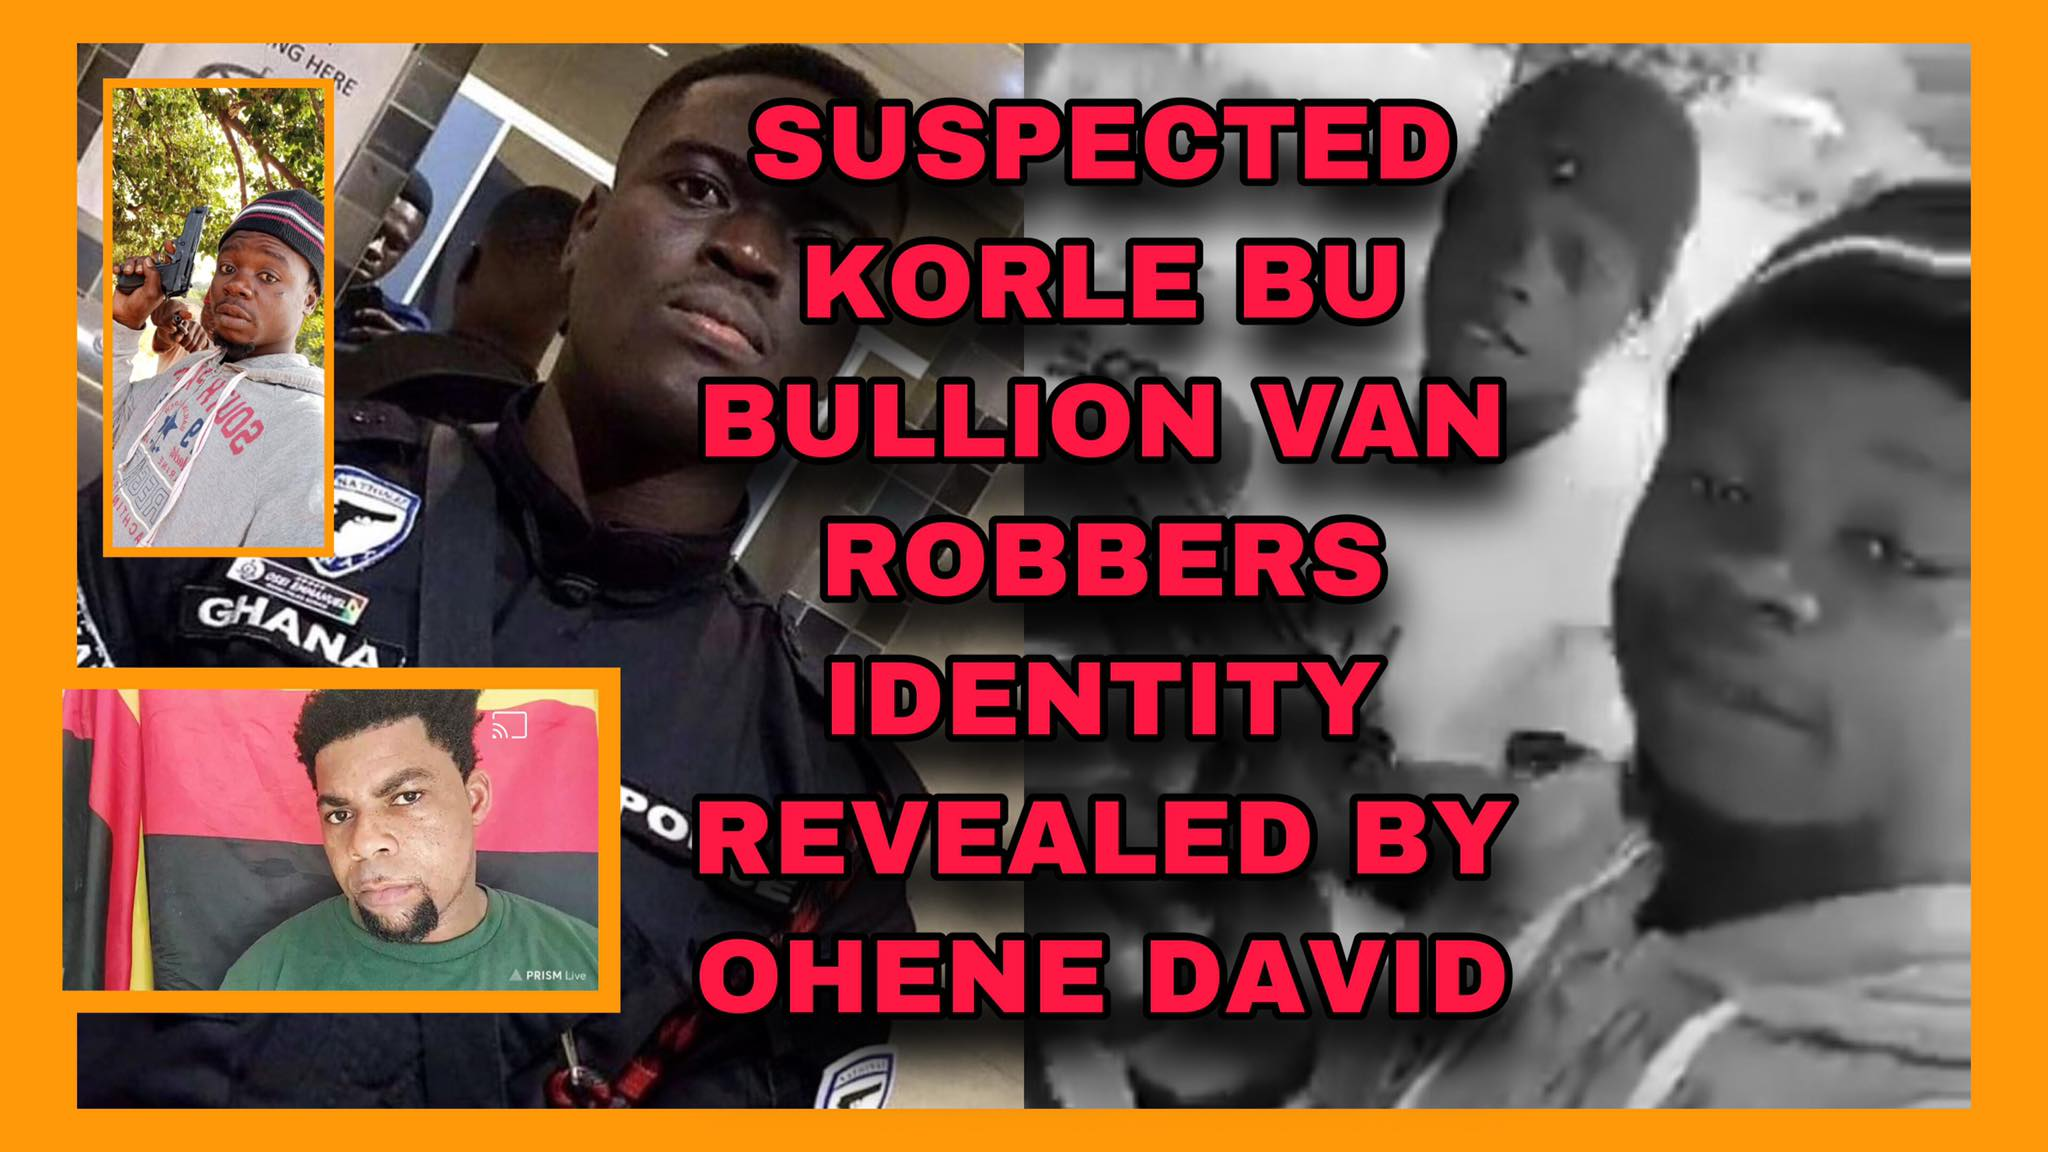 Identities Of Korle Bu Bullion Van Robbers Who Killed A Police Officer & A Lady Revealed